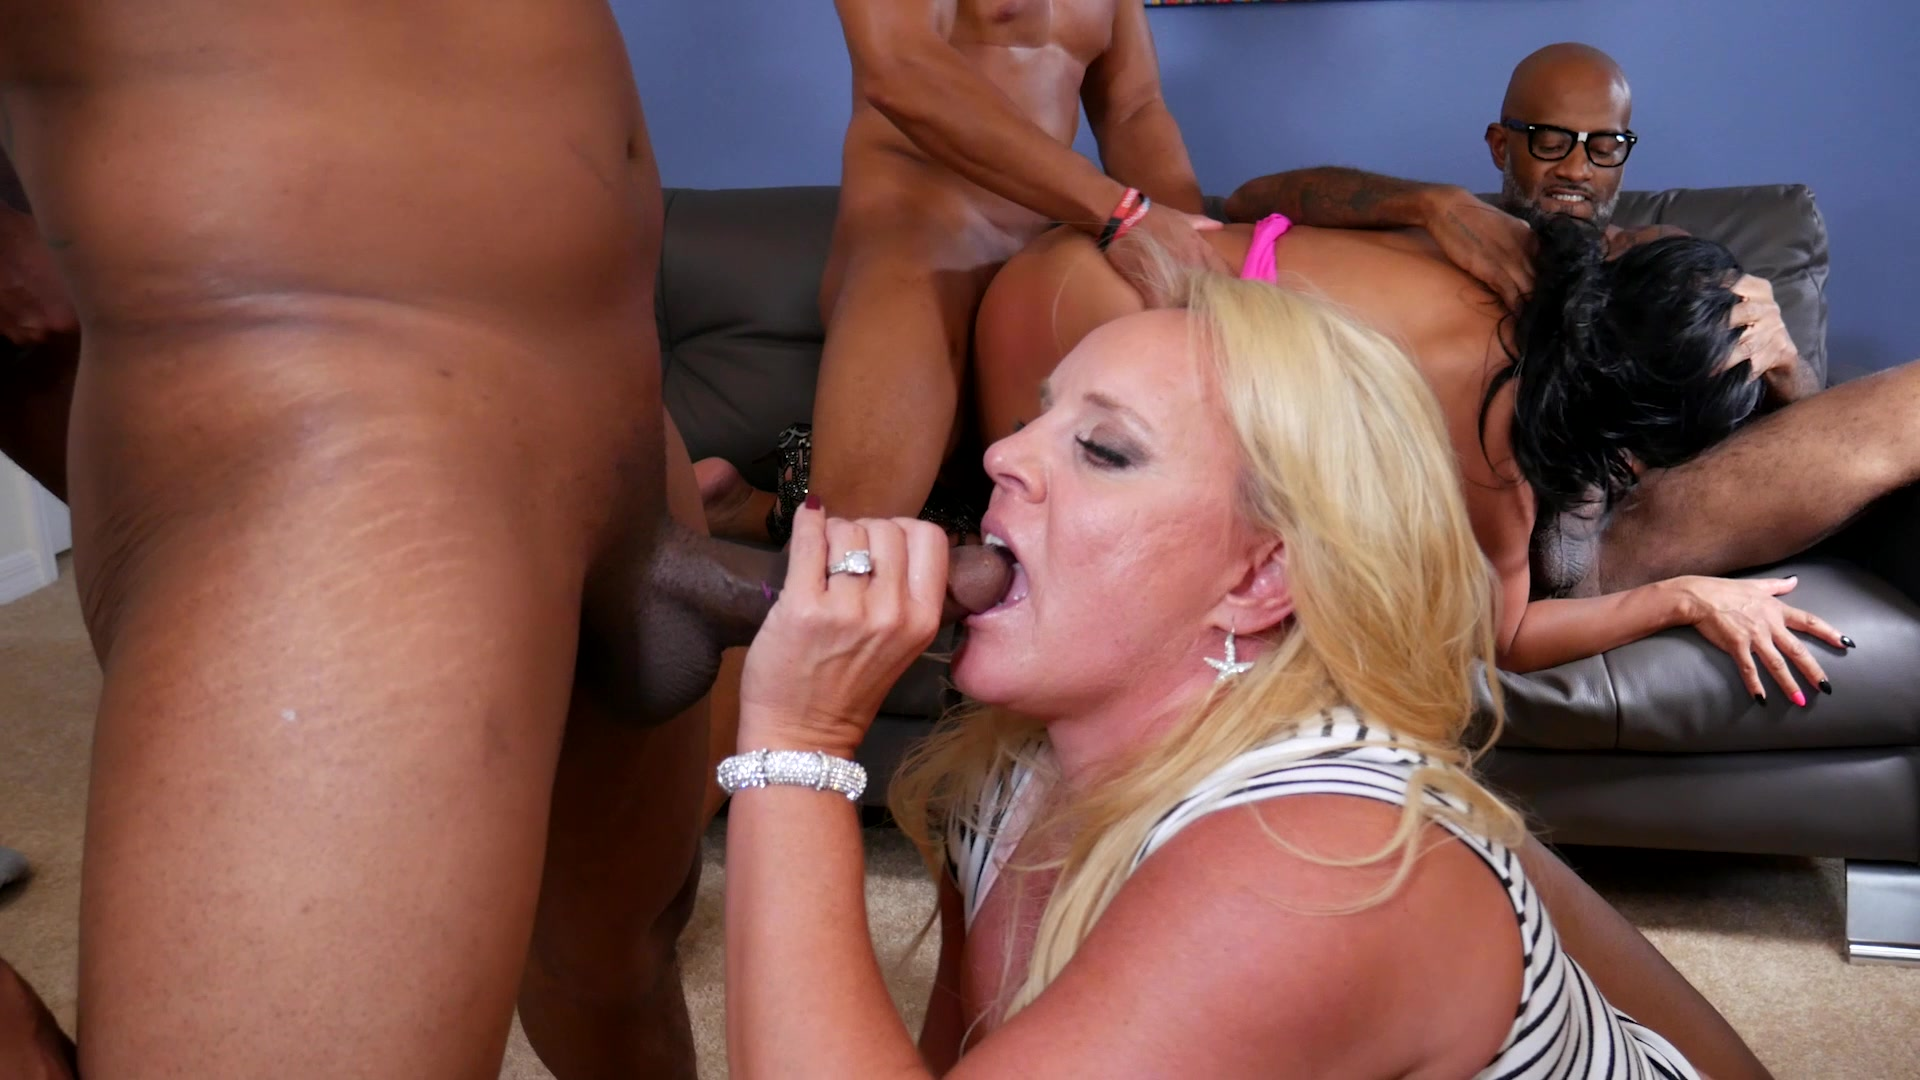 Free traci lord porn video-2013